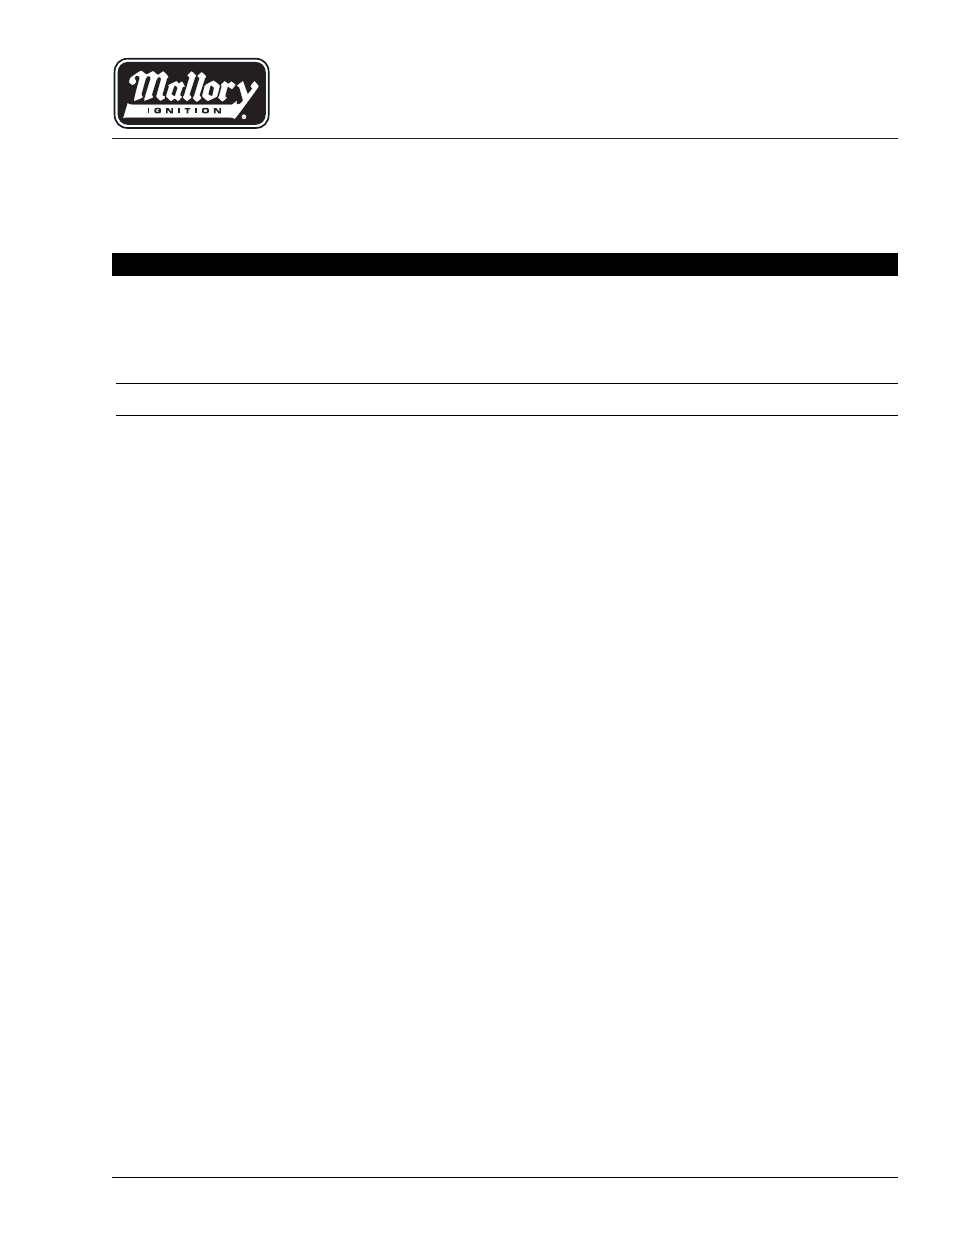 Mallory Ignition Mallory UNILITE DISTRIBUTOR User Manual | 13 pages | Also  for: Mallory UNILITE DISTRIBUTOR 605